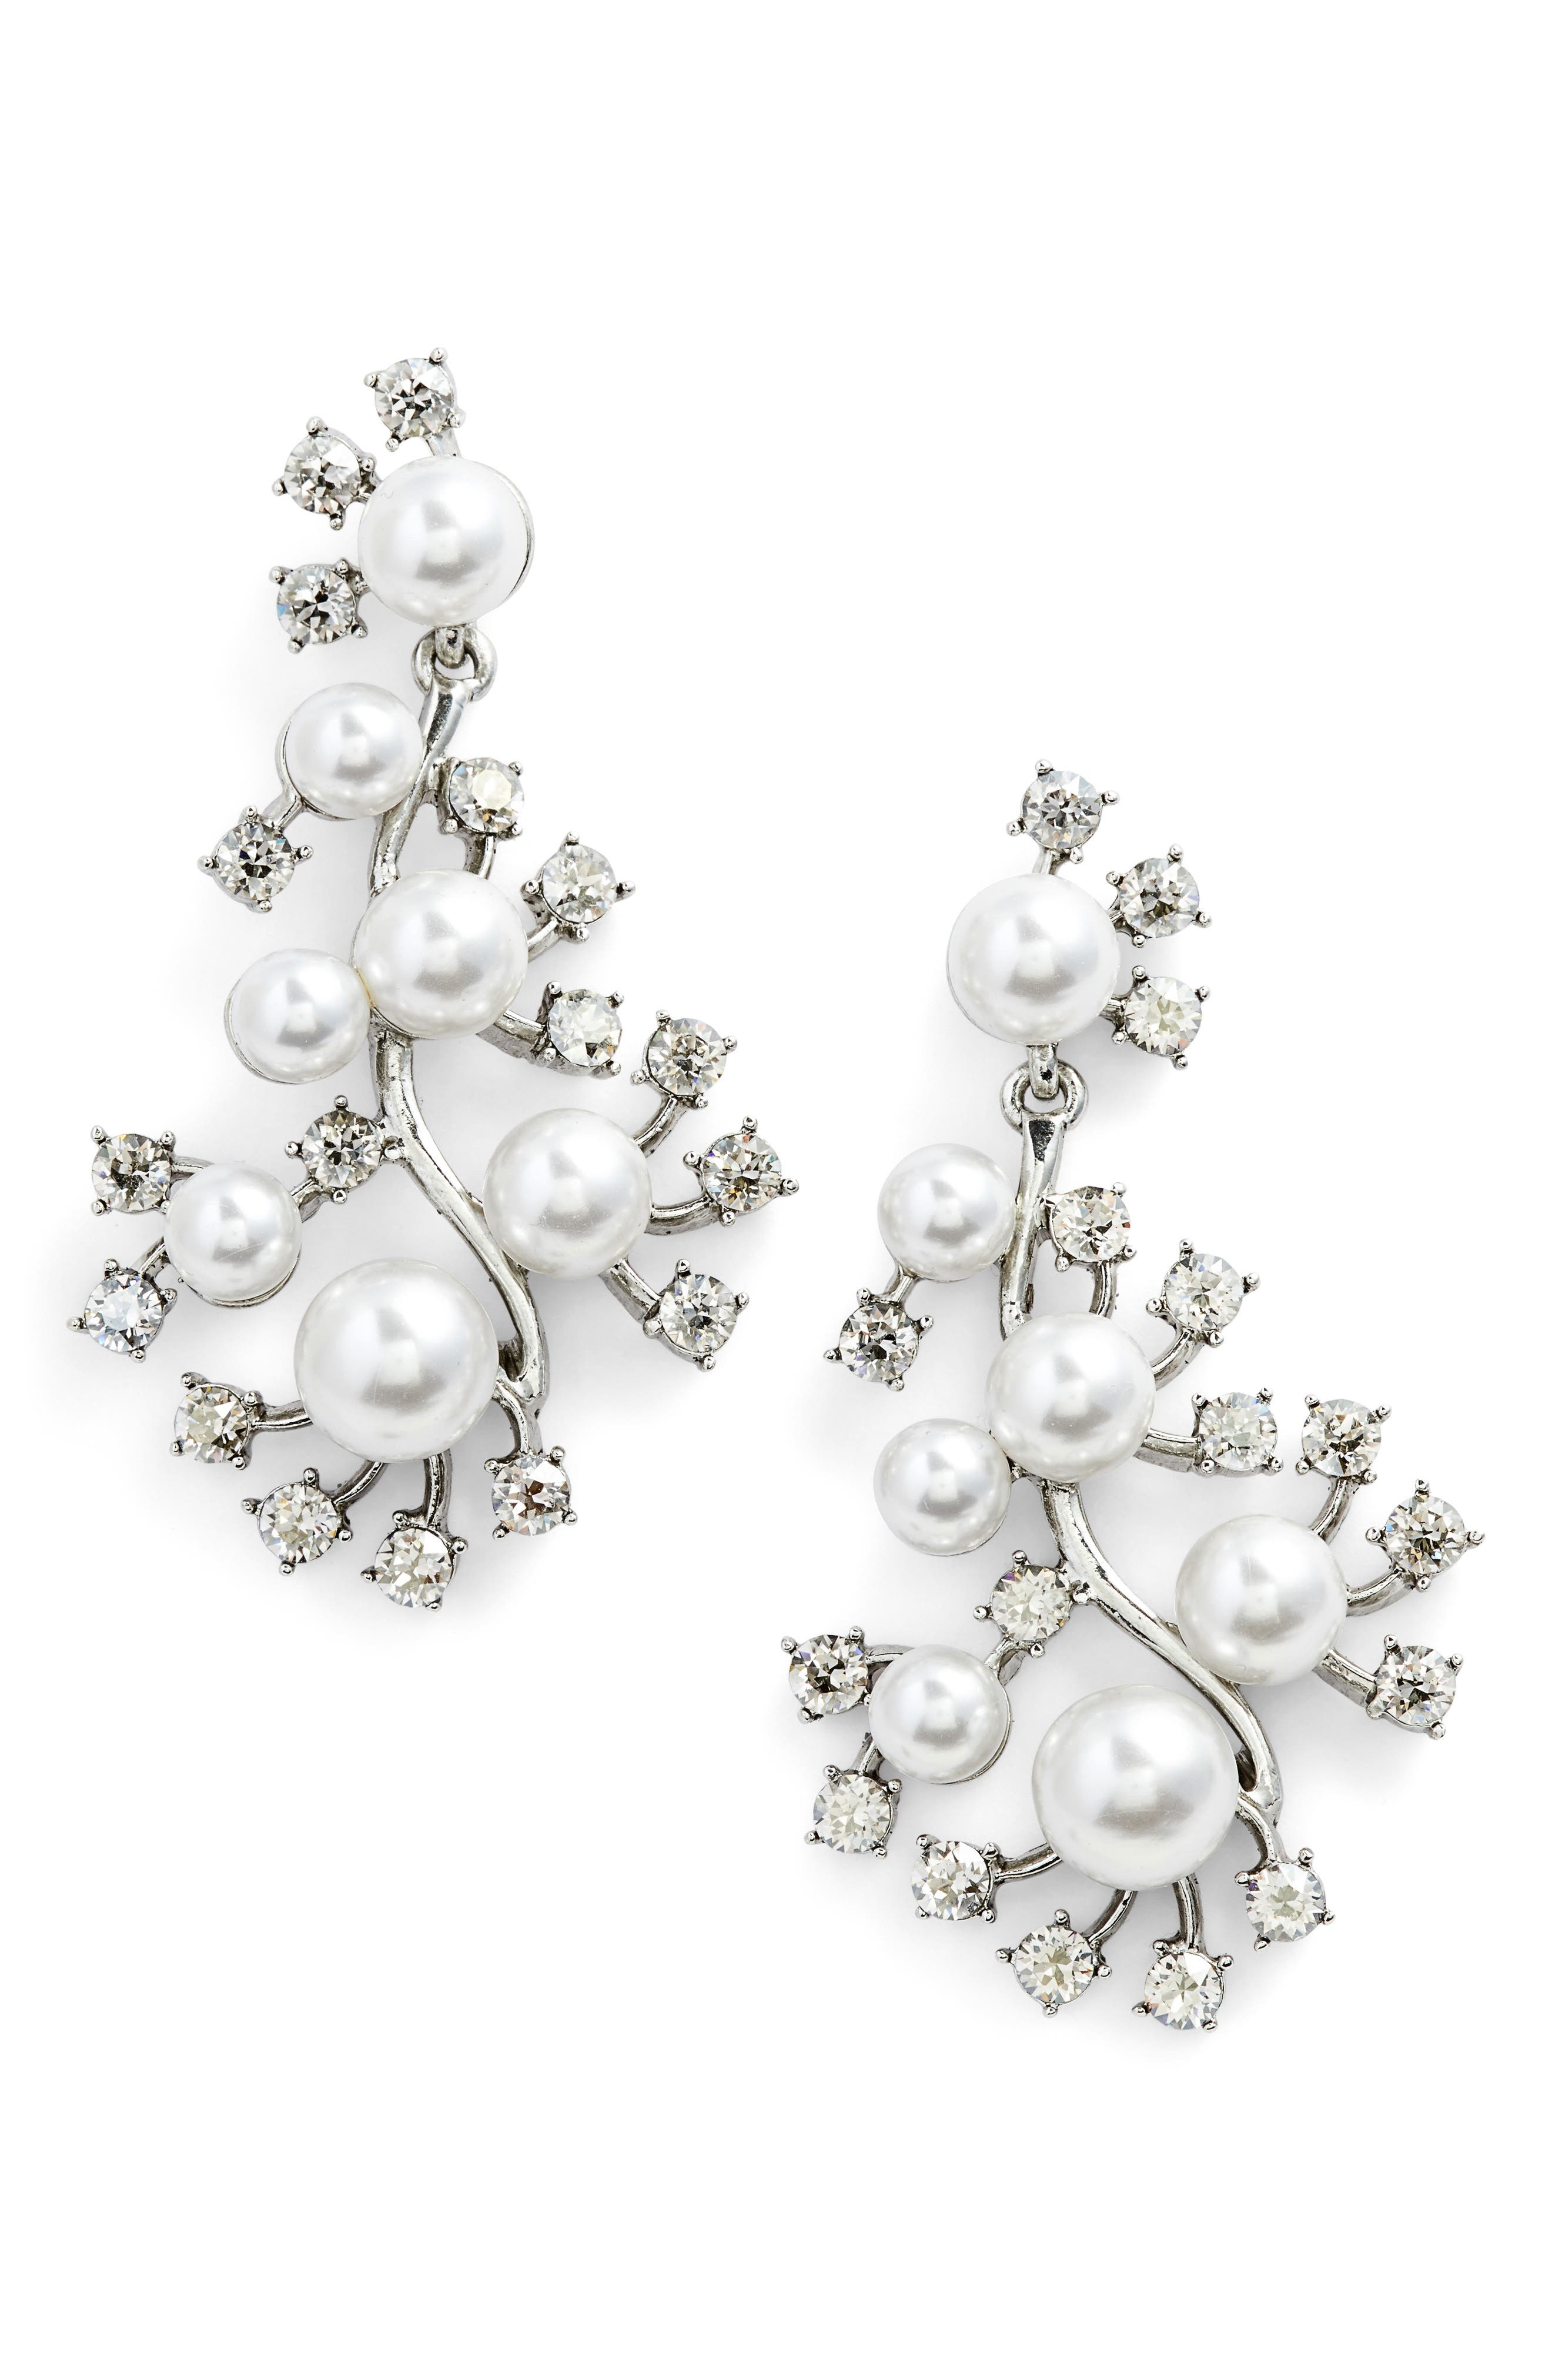 Scattered Imitation Pearl & Crystal Drop Earrings,                             Main thumbnail 1, color,                             040